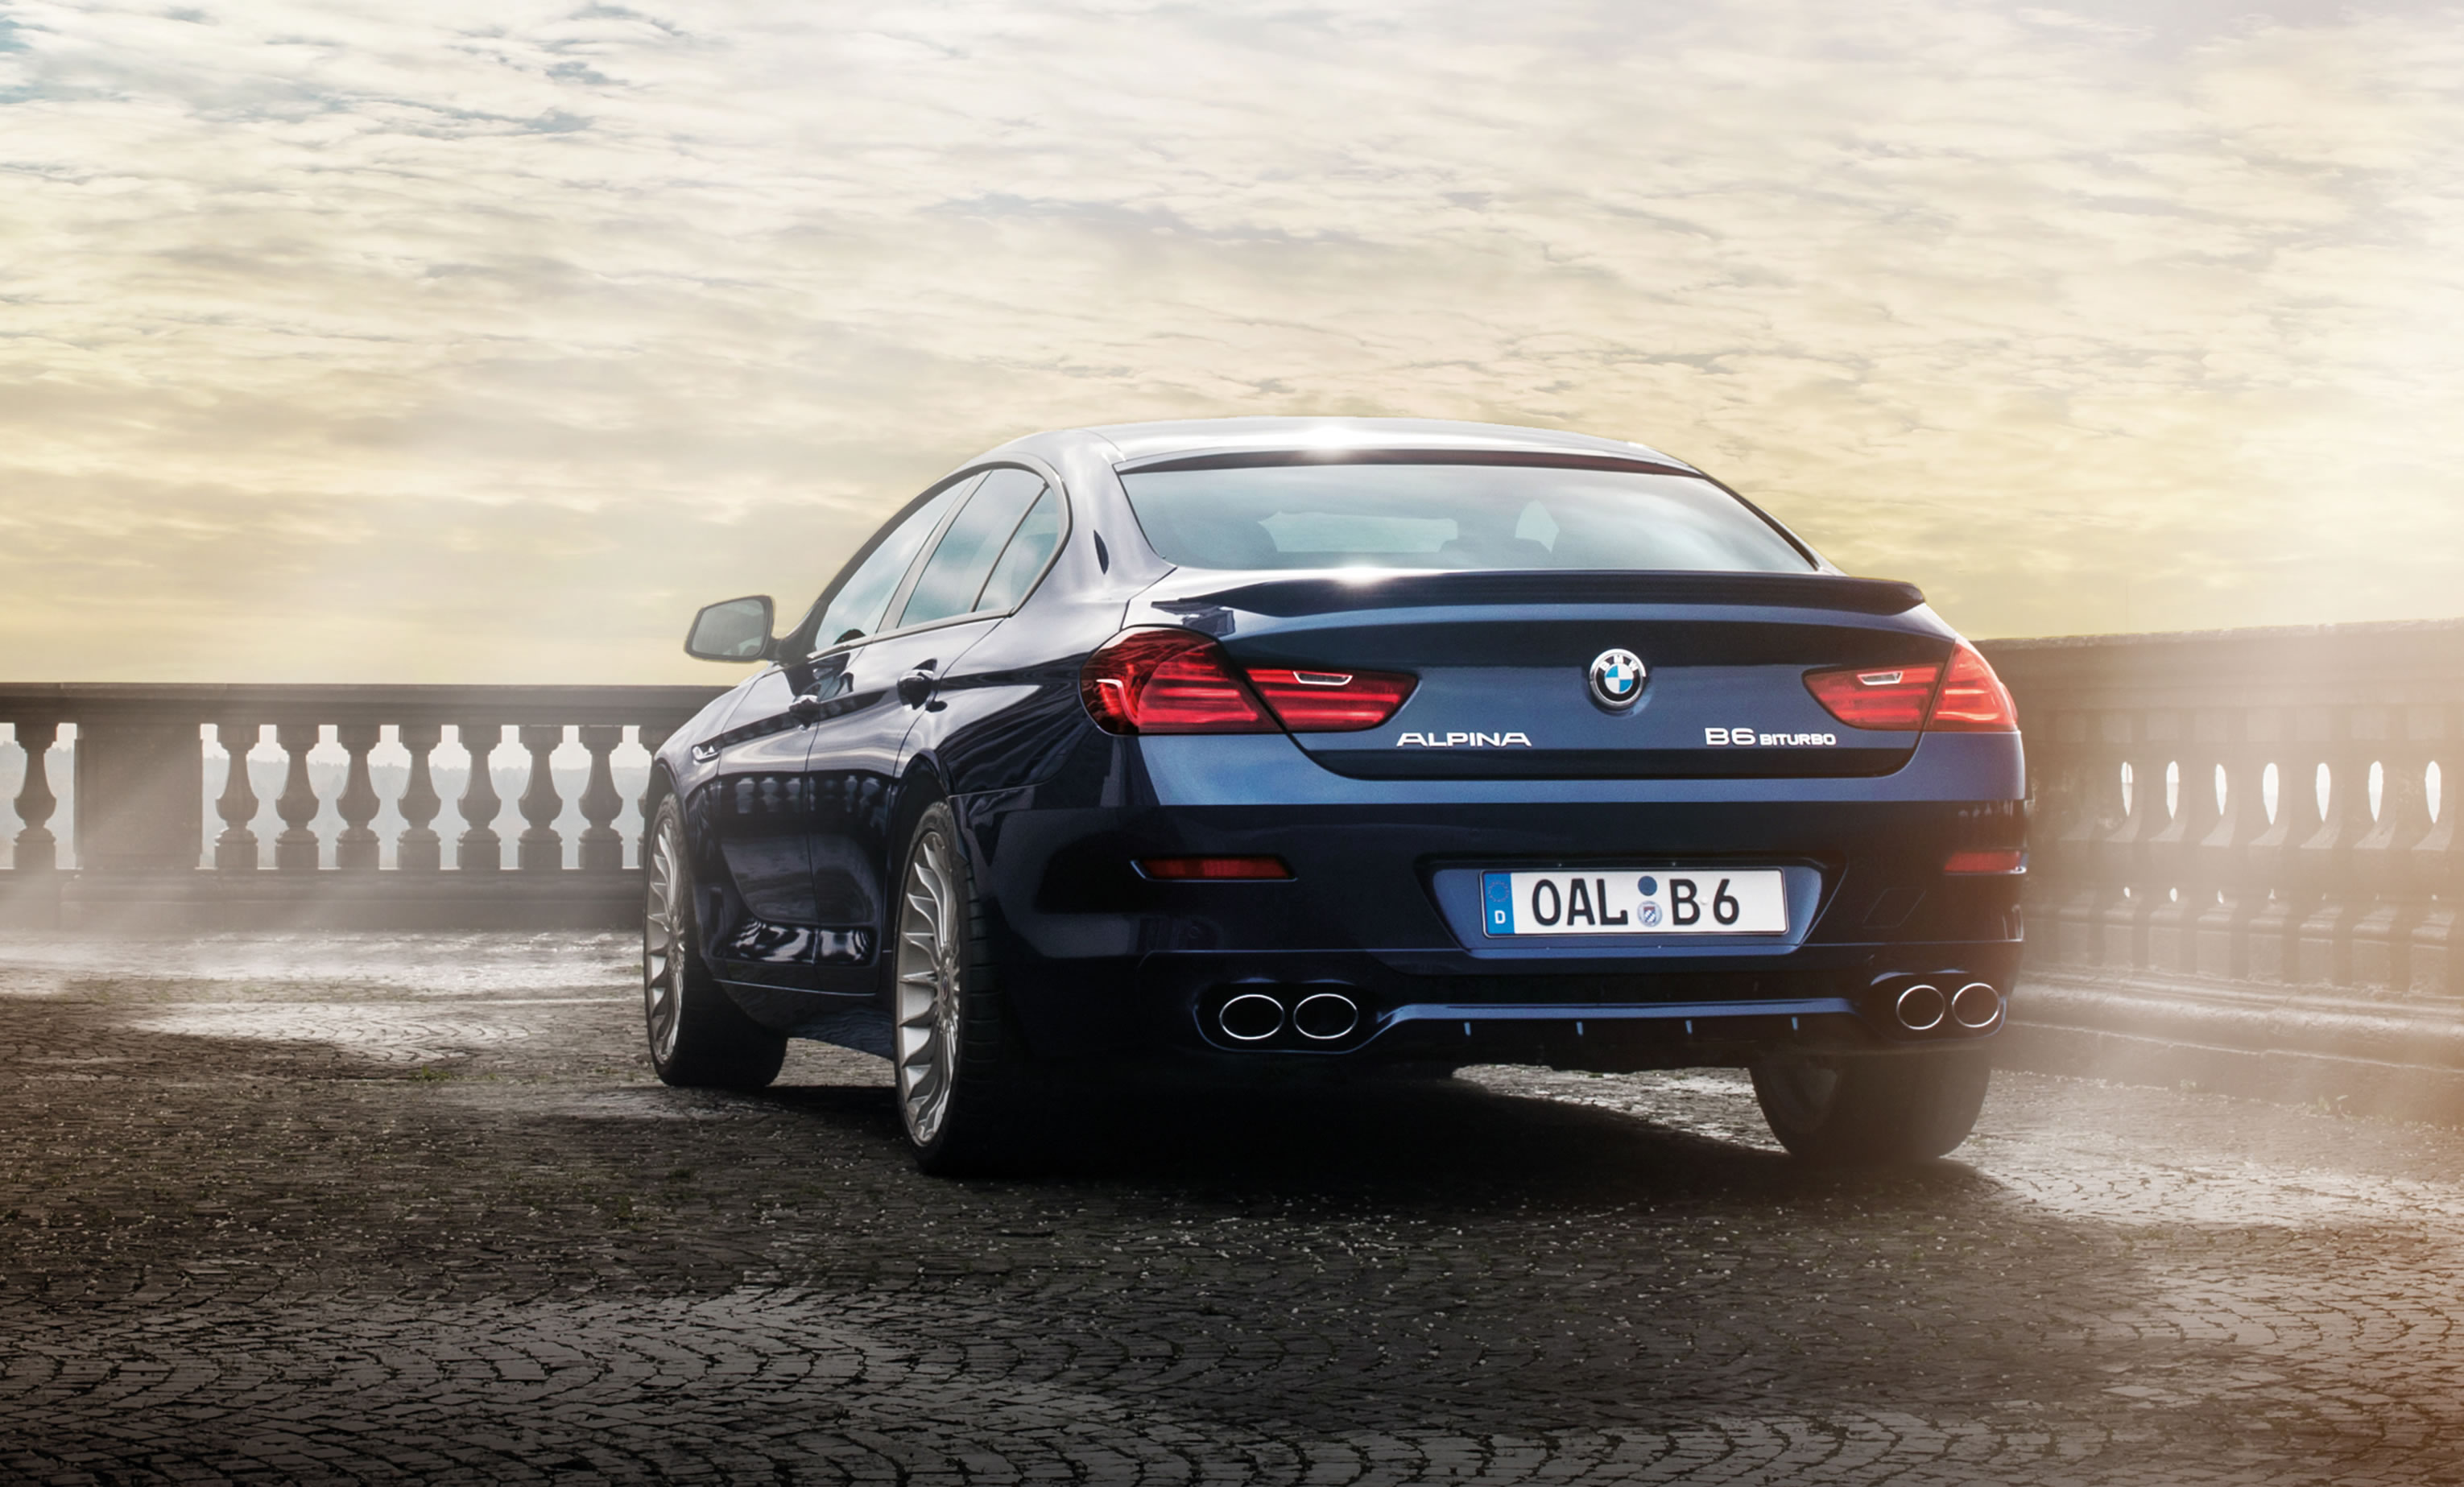 2015 Alpina B6 Biturbo Gran Coupe Photos, Specs and Review - RS